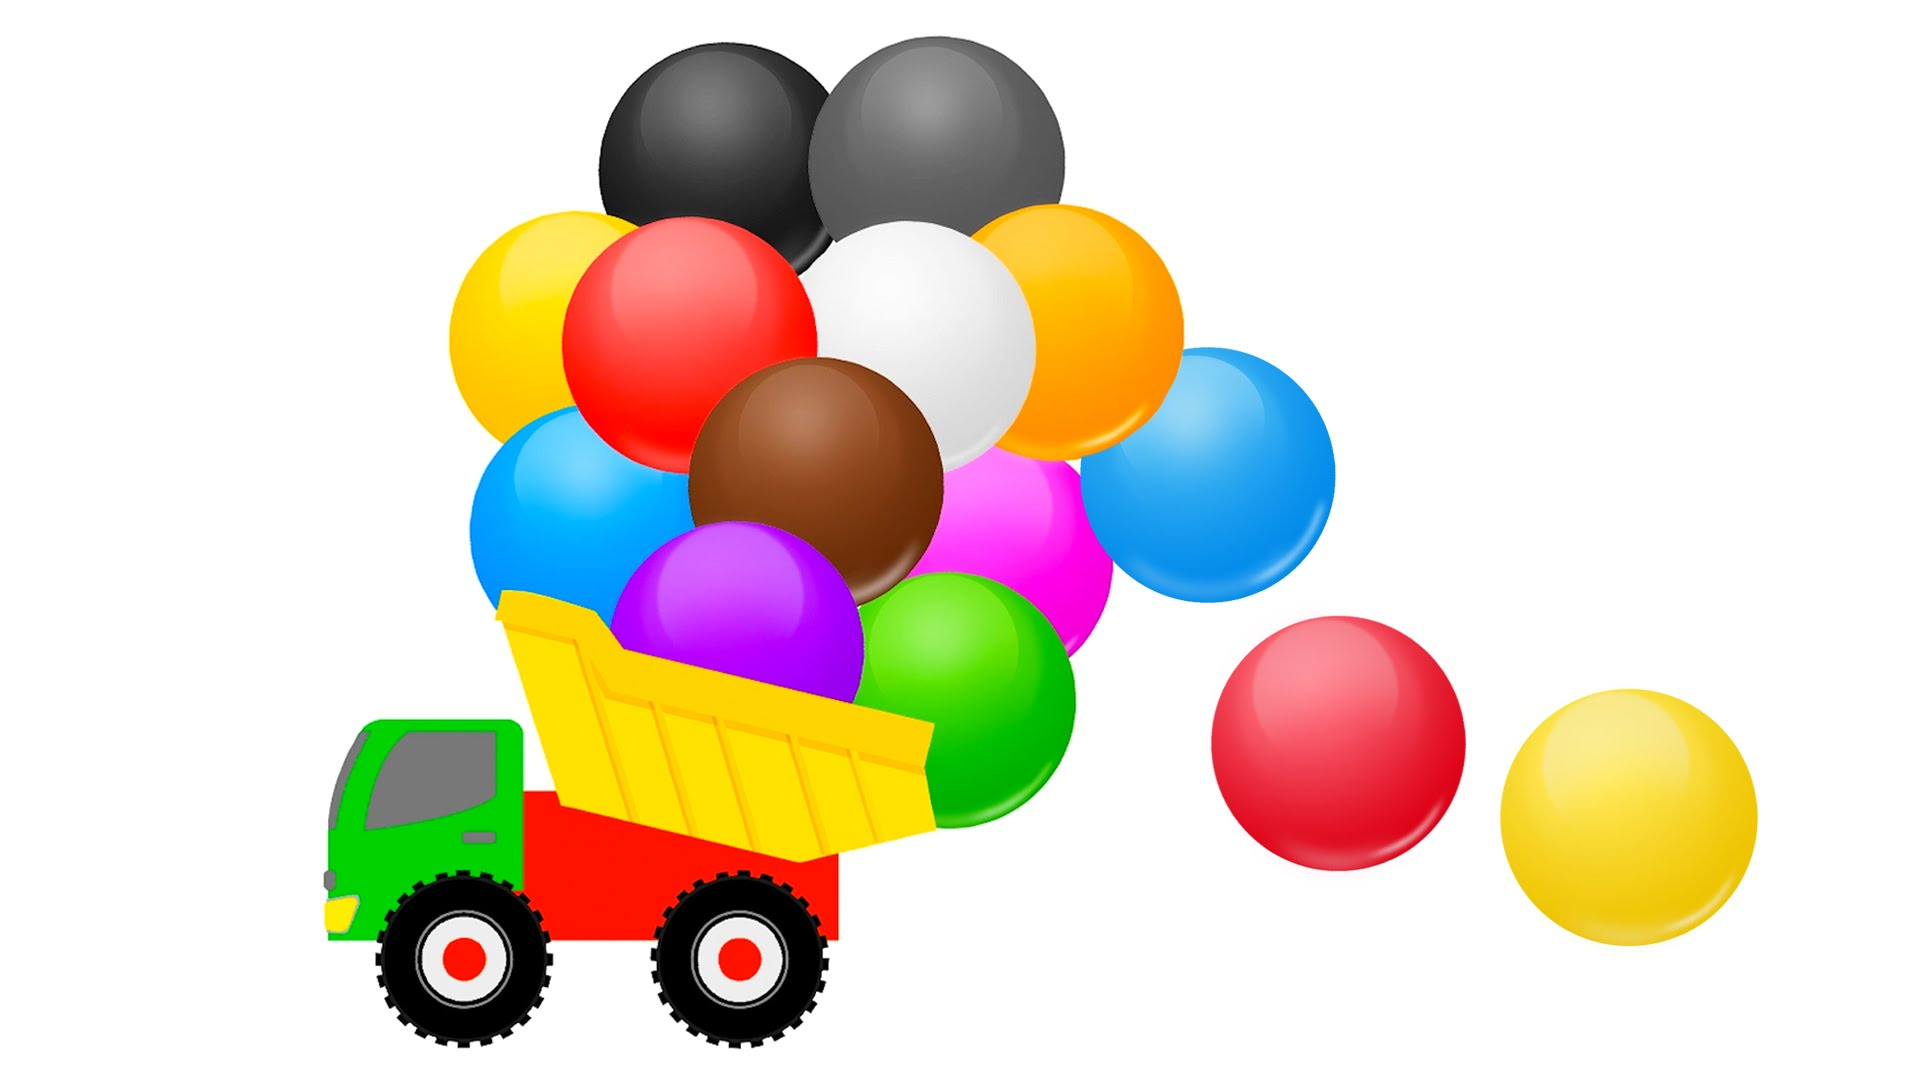 Color ball clipart image transparent library Ball Photos   Free download best Ball Photos on ClipArtMag.com image transparent library